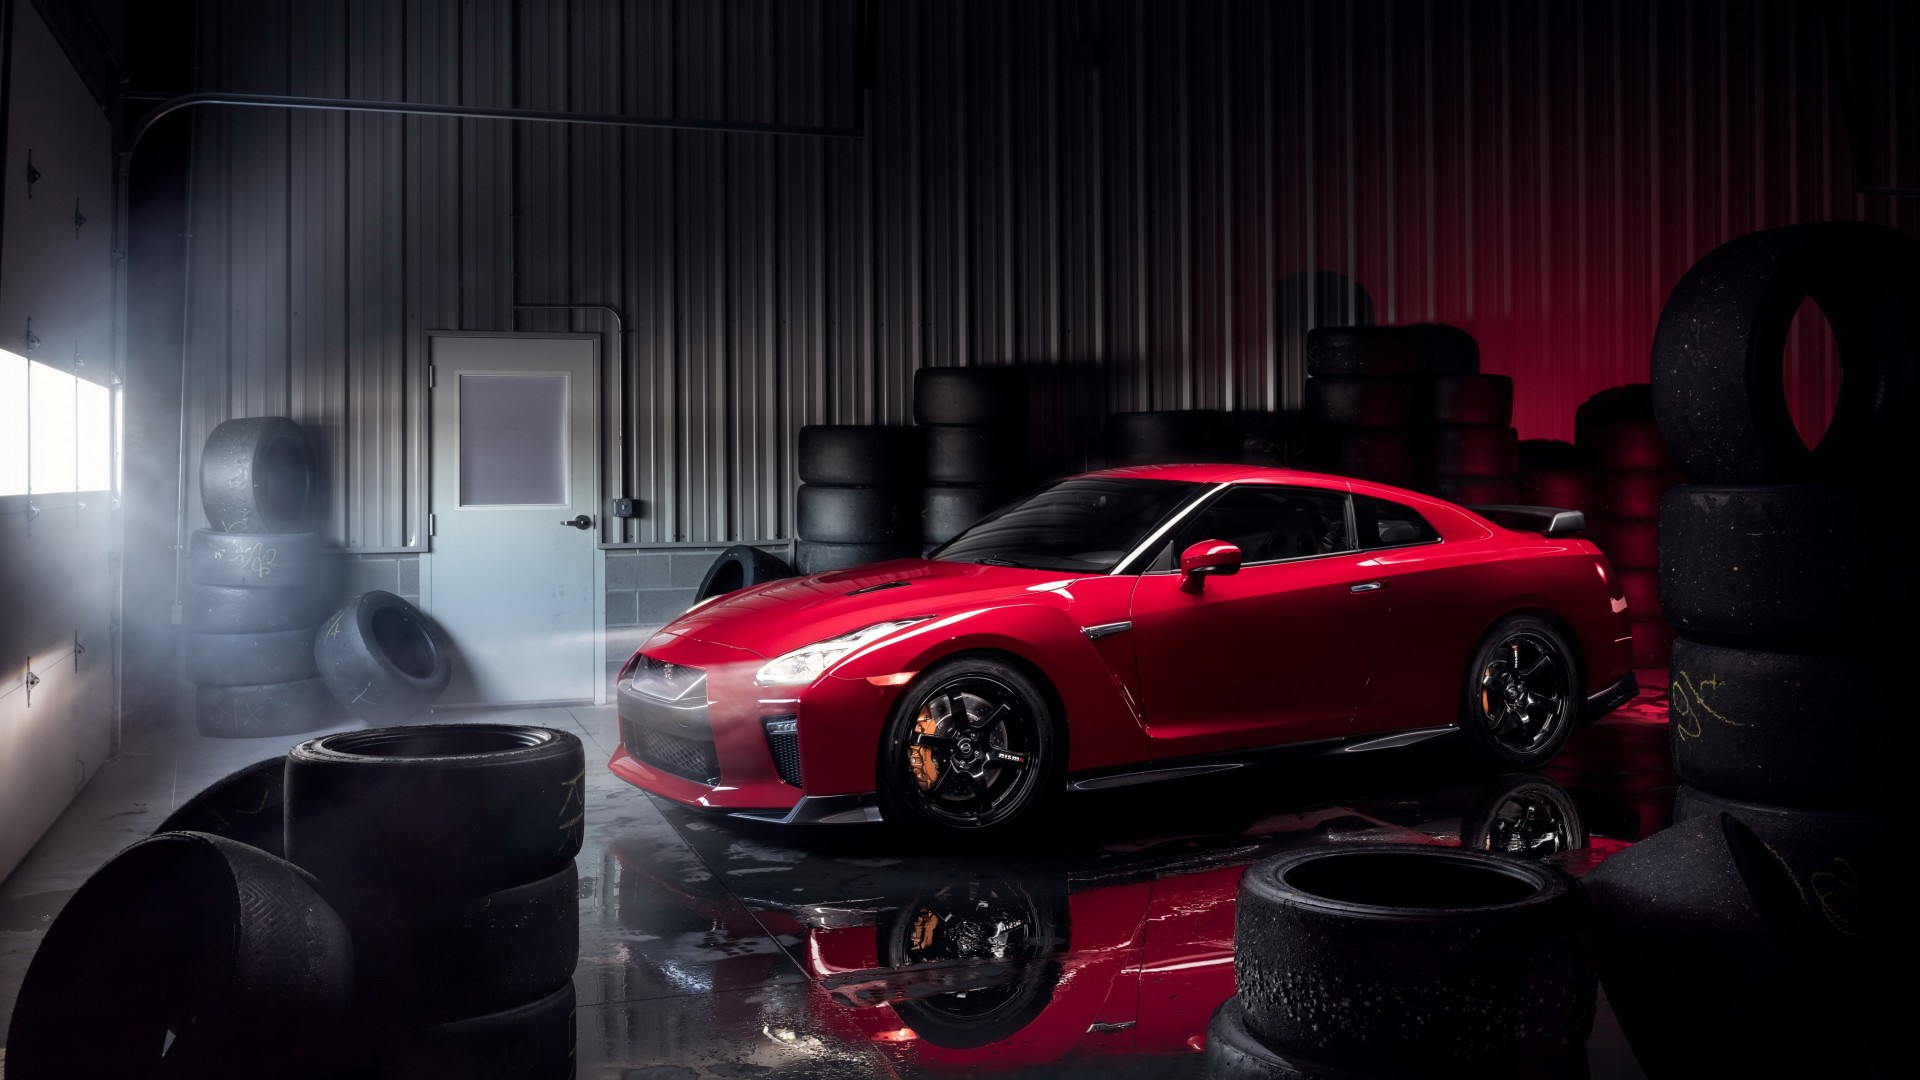 Nissan Gt R 2017 Us Wallpapers And Hd Images: 2017 Nissan GT R Track Edition Wallpaper